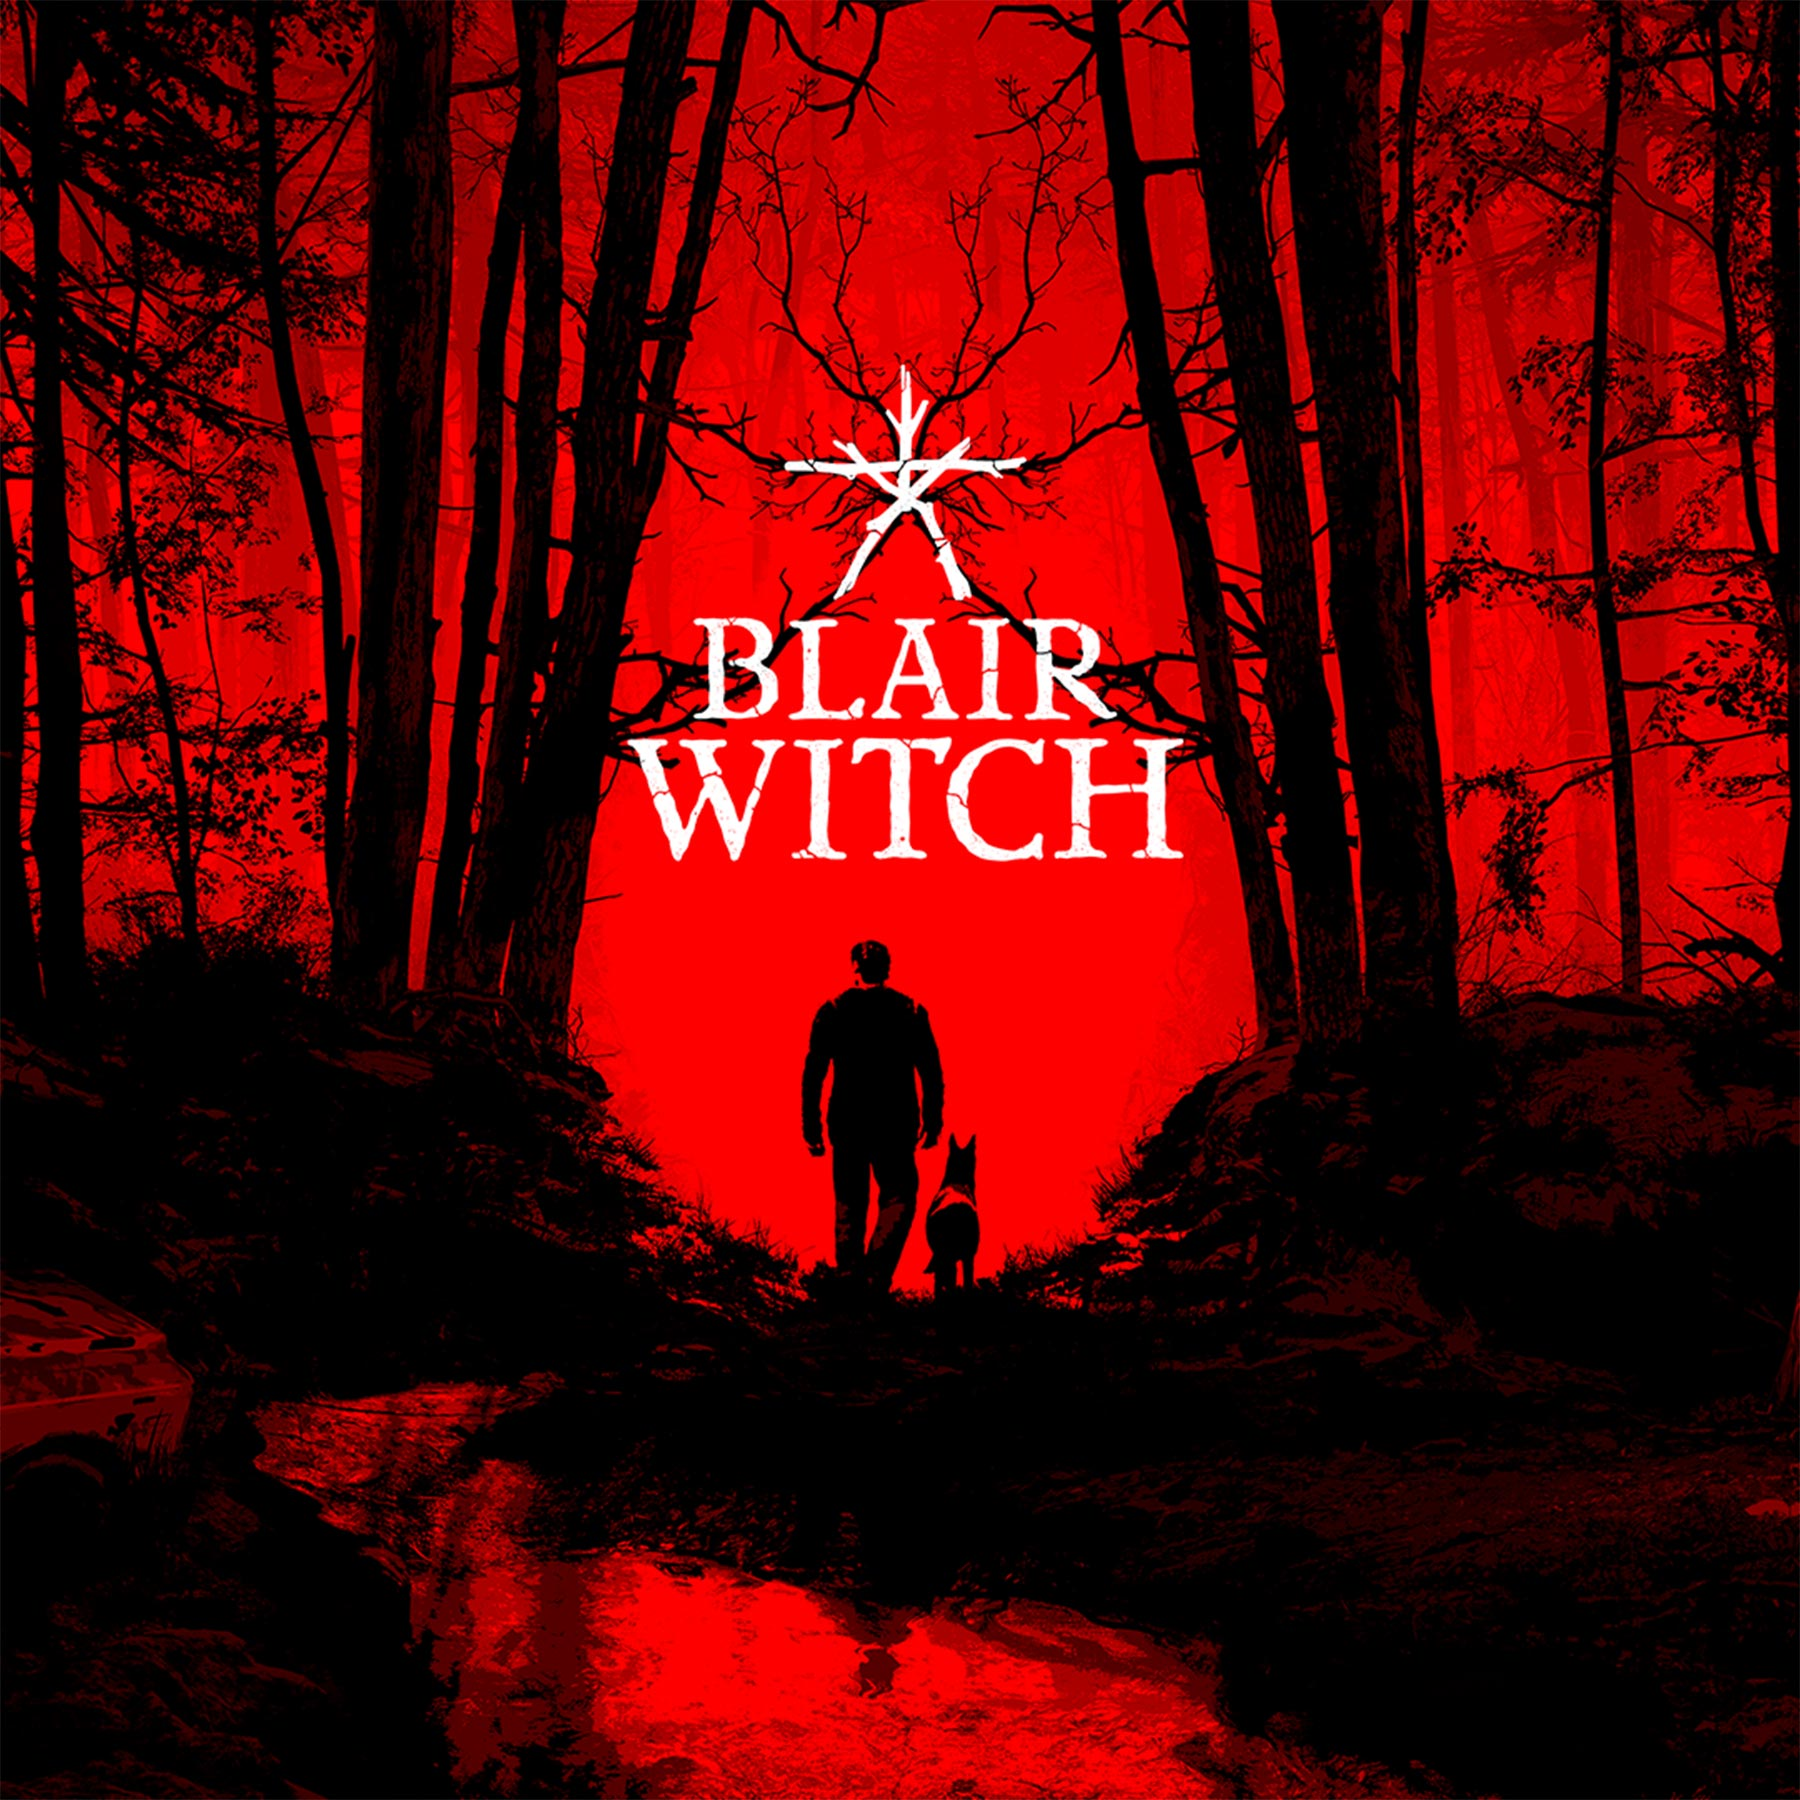 New Blair Witchvideogame footage uncovers psychological horrors